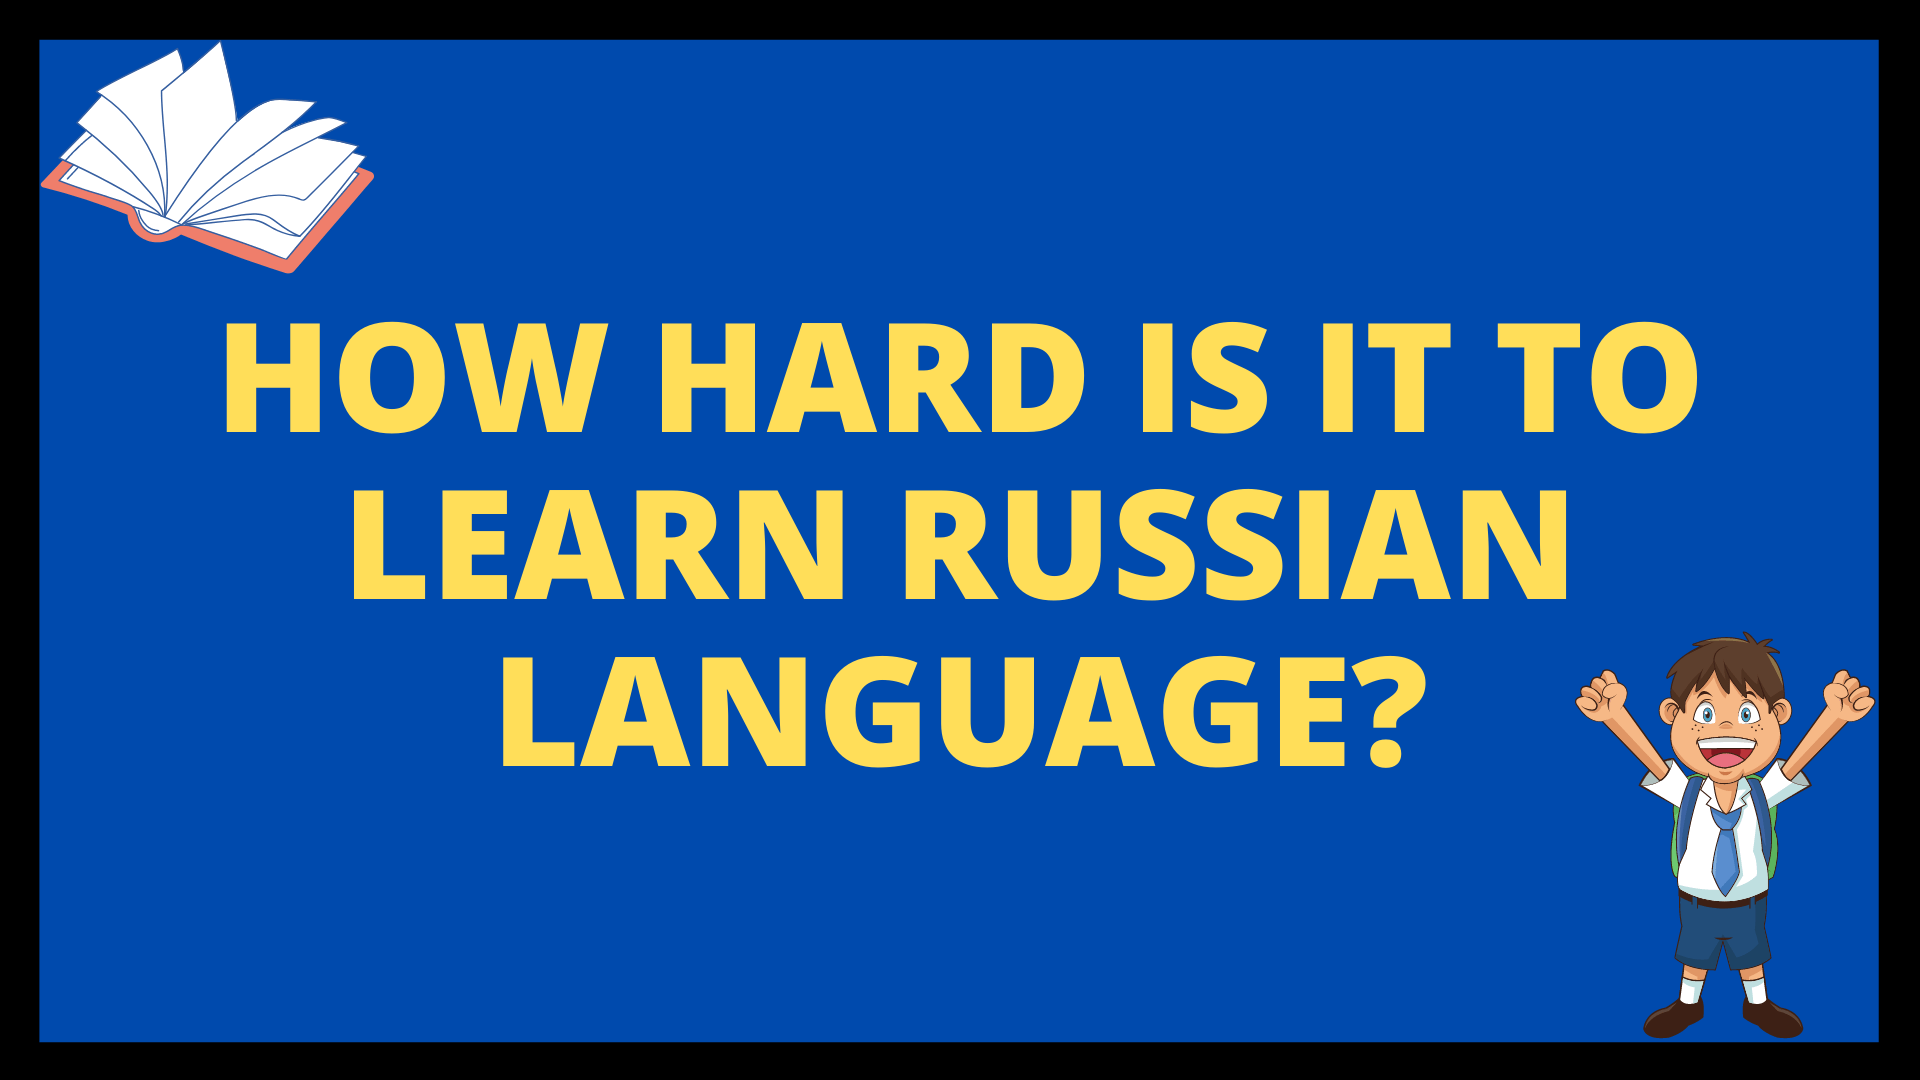 How Hard is it to Learn Russian Language?